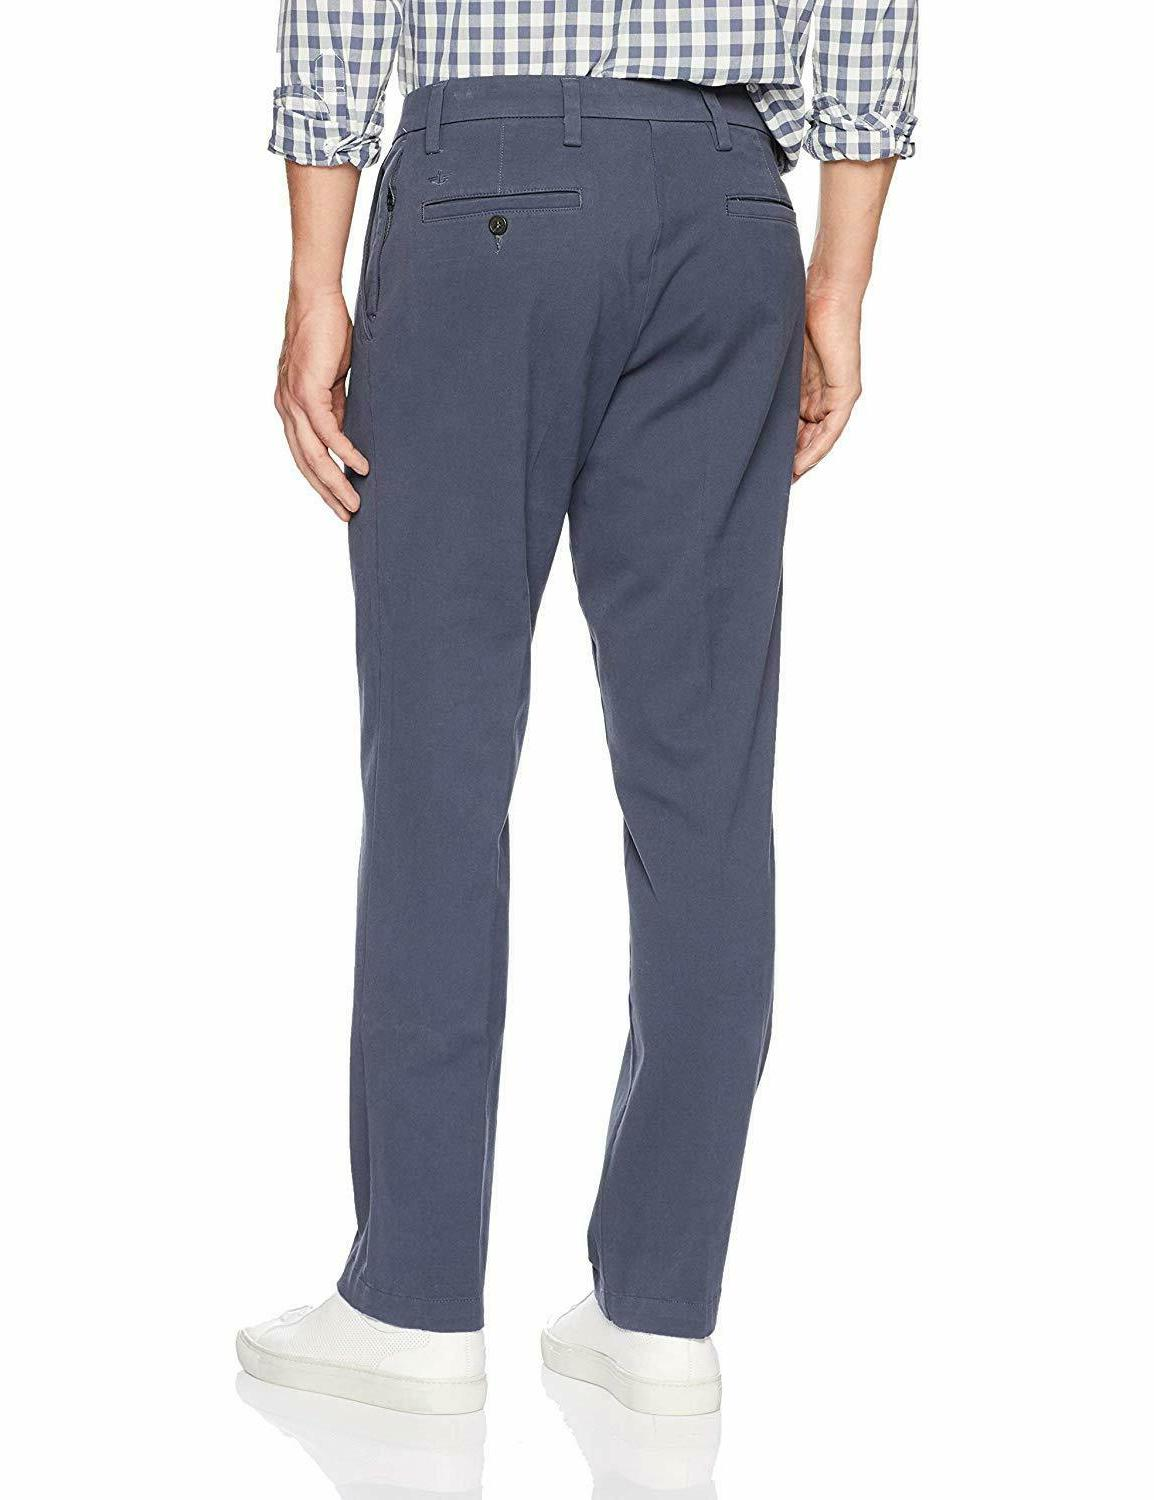 Dockers Men's Workday Khaki Pants Smart 360 Flex